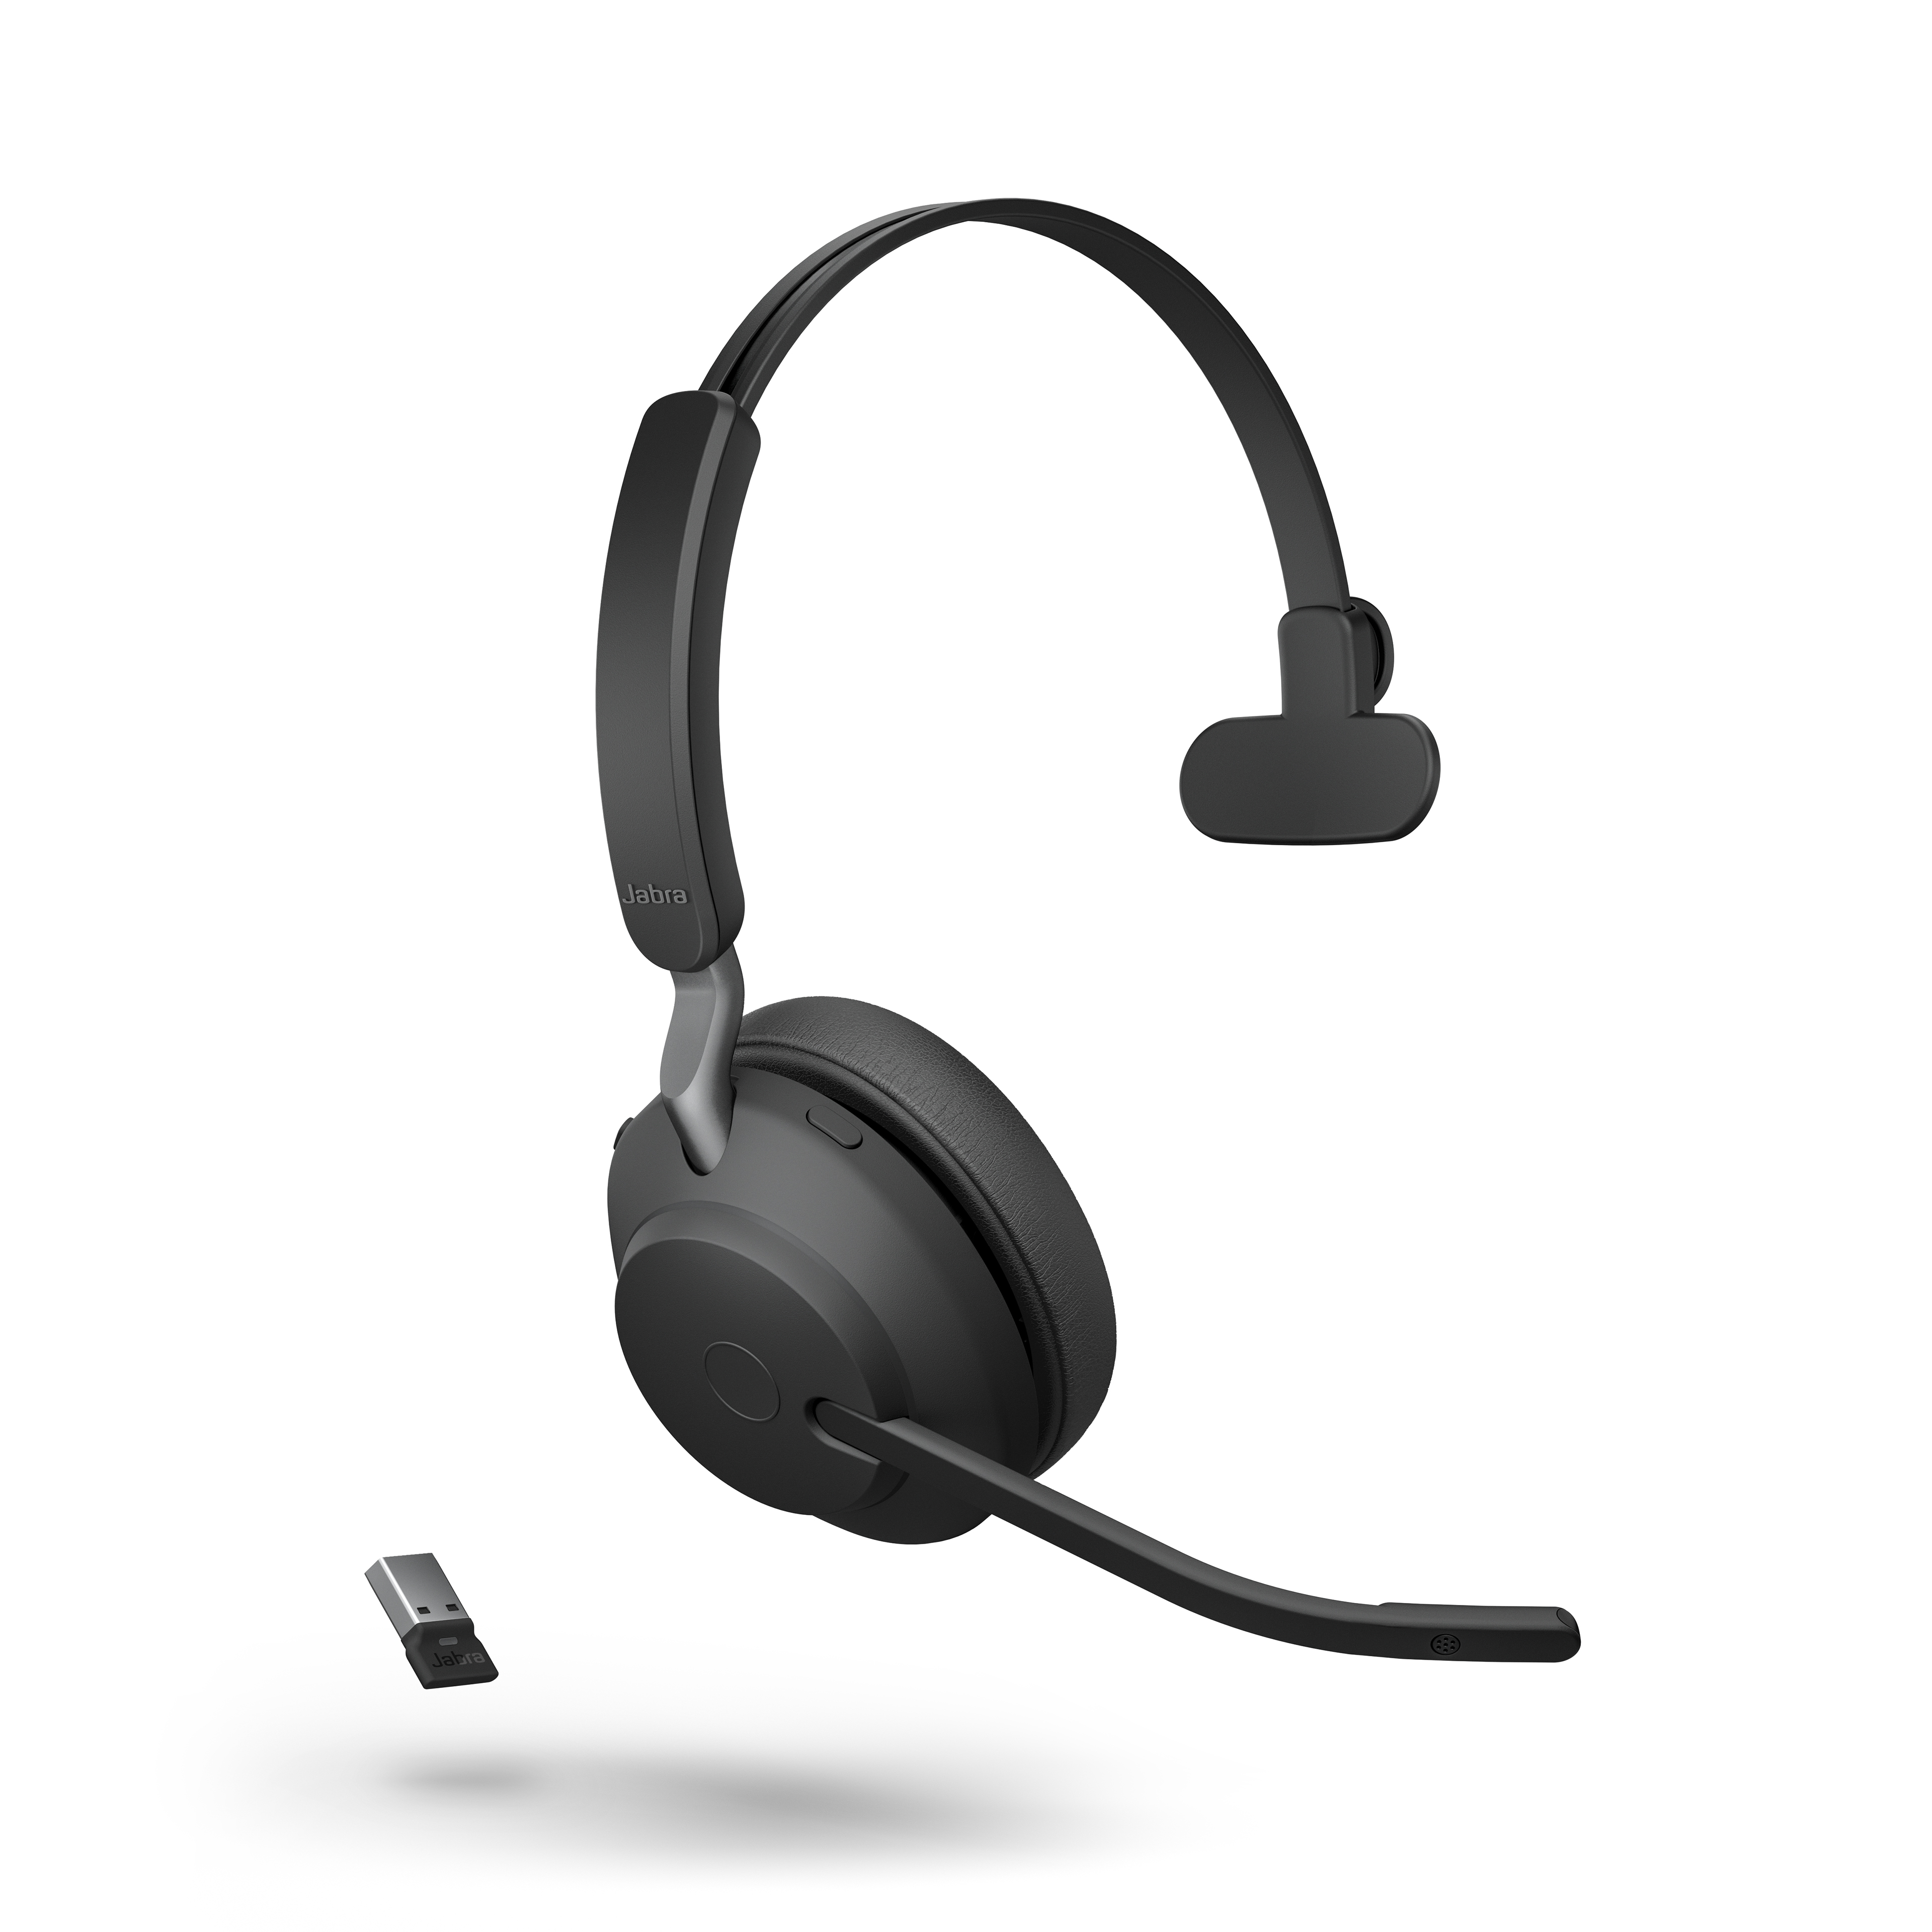 Jabra Evolve2 65 Usb A Mono Uc Headset Black 26599 889 999 Voip Supply